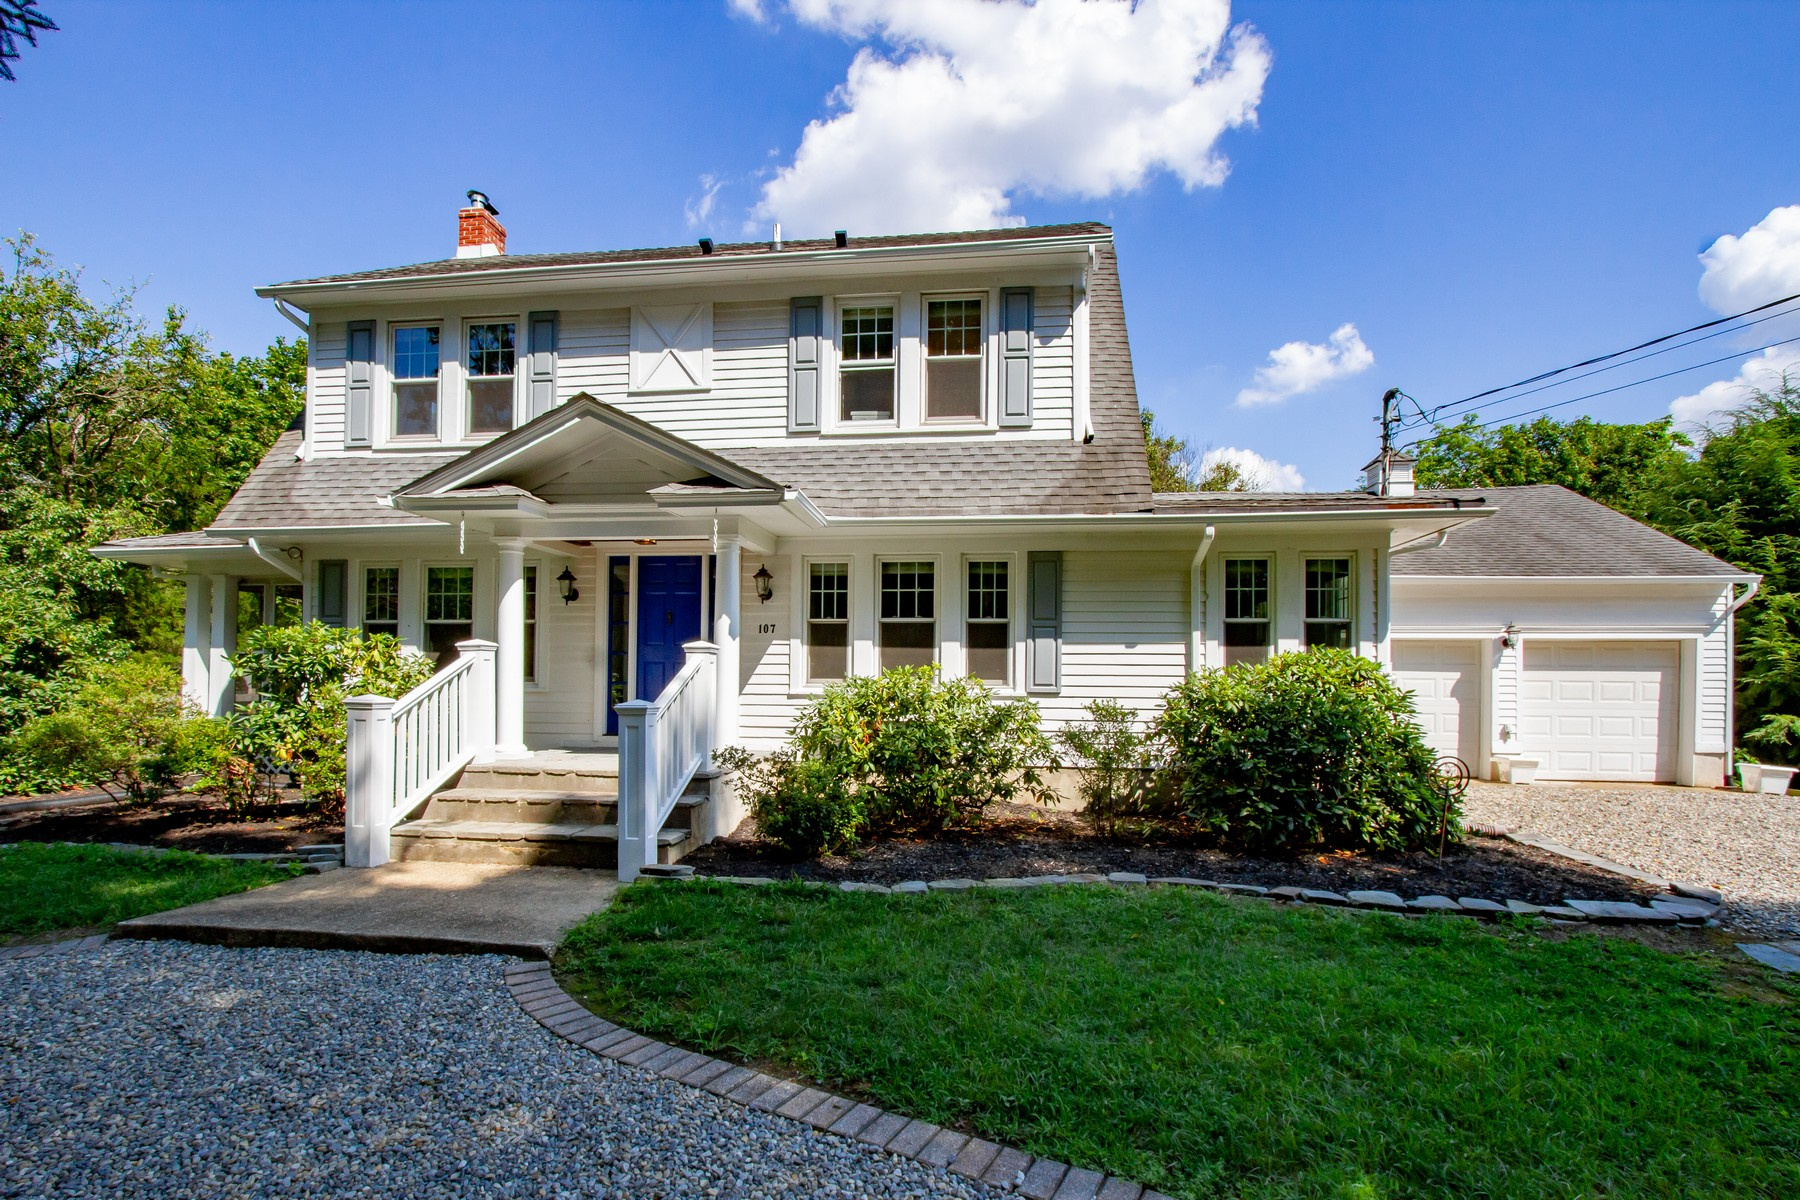 Single Family Homes for Sale at Farmhouse Chic 107 Brown Rd Howell, New Jersey 07731 United States